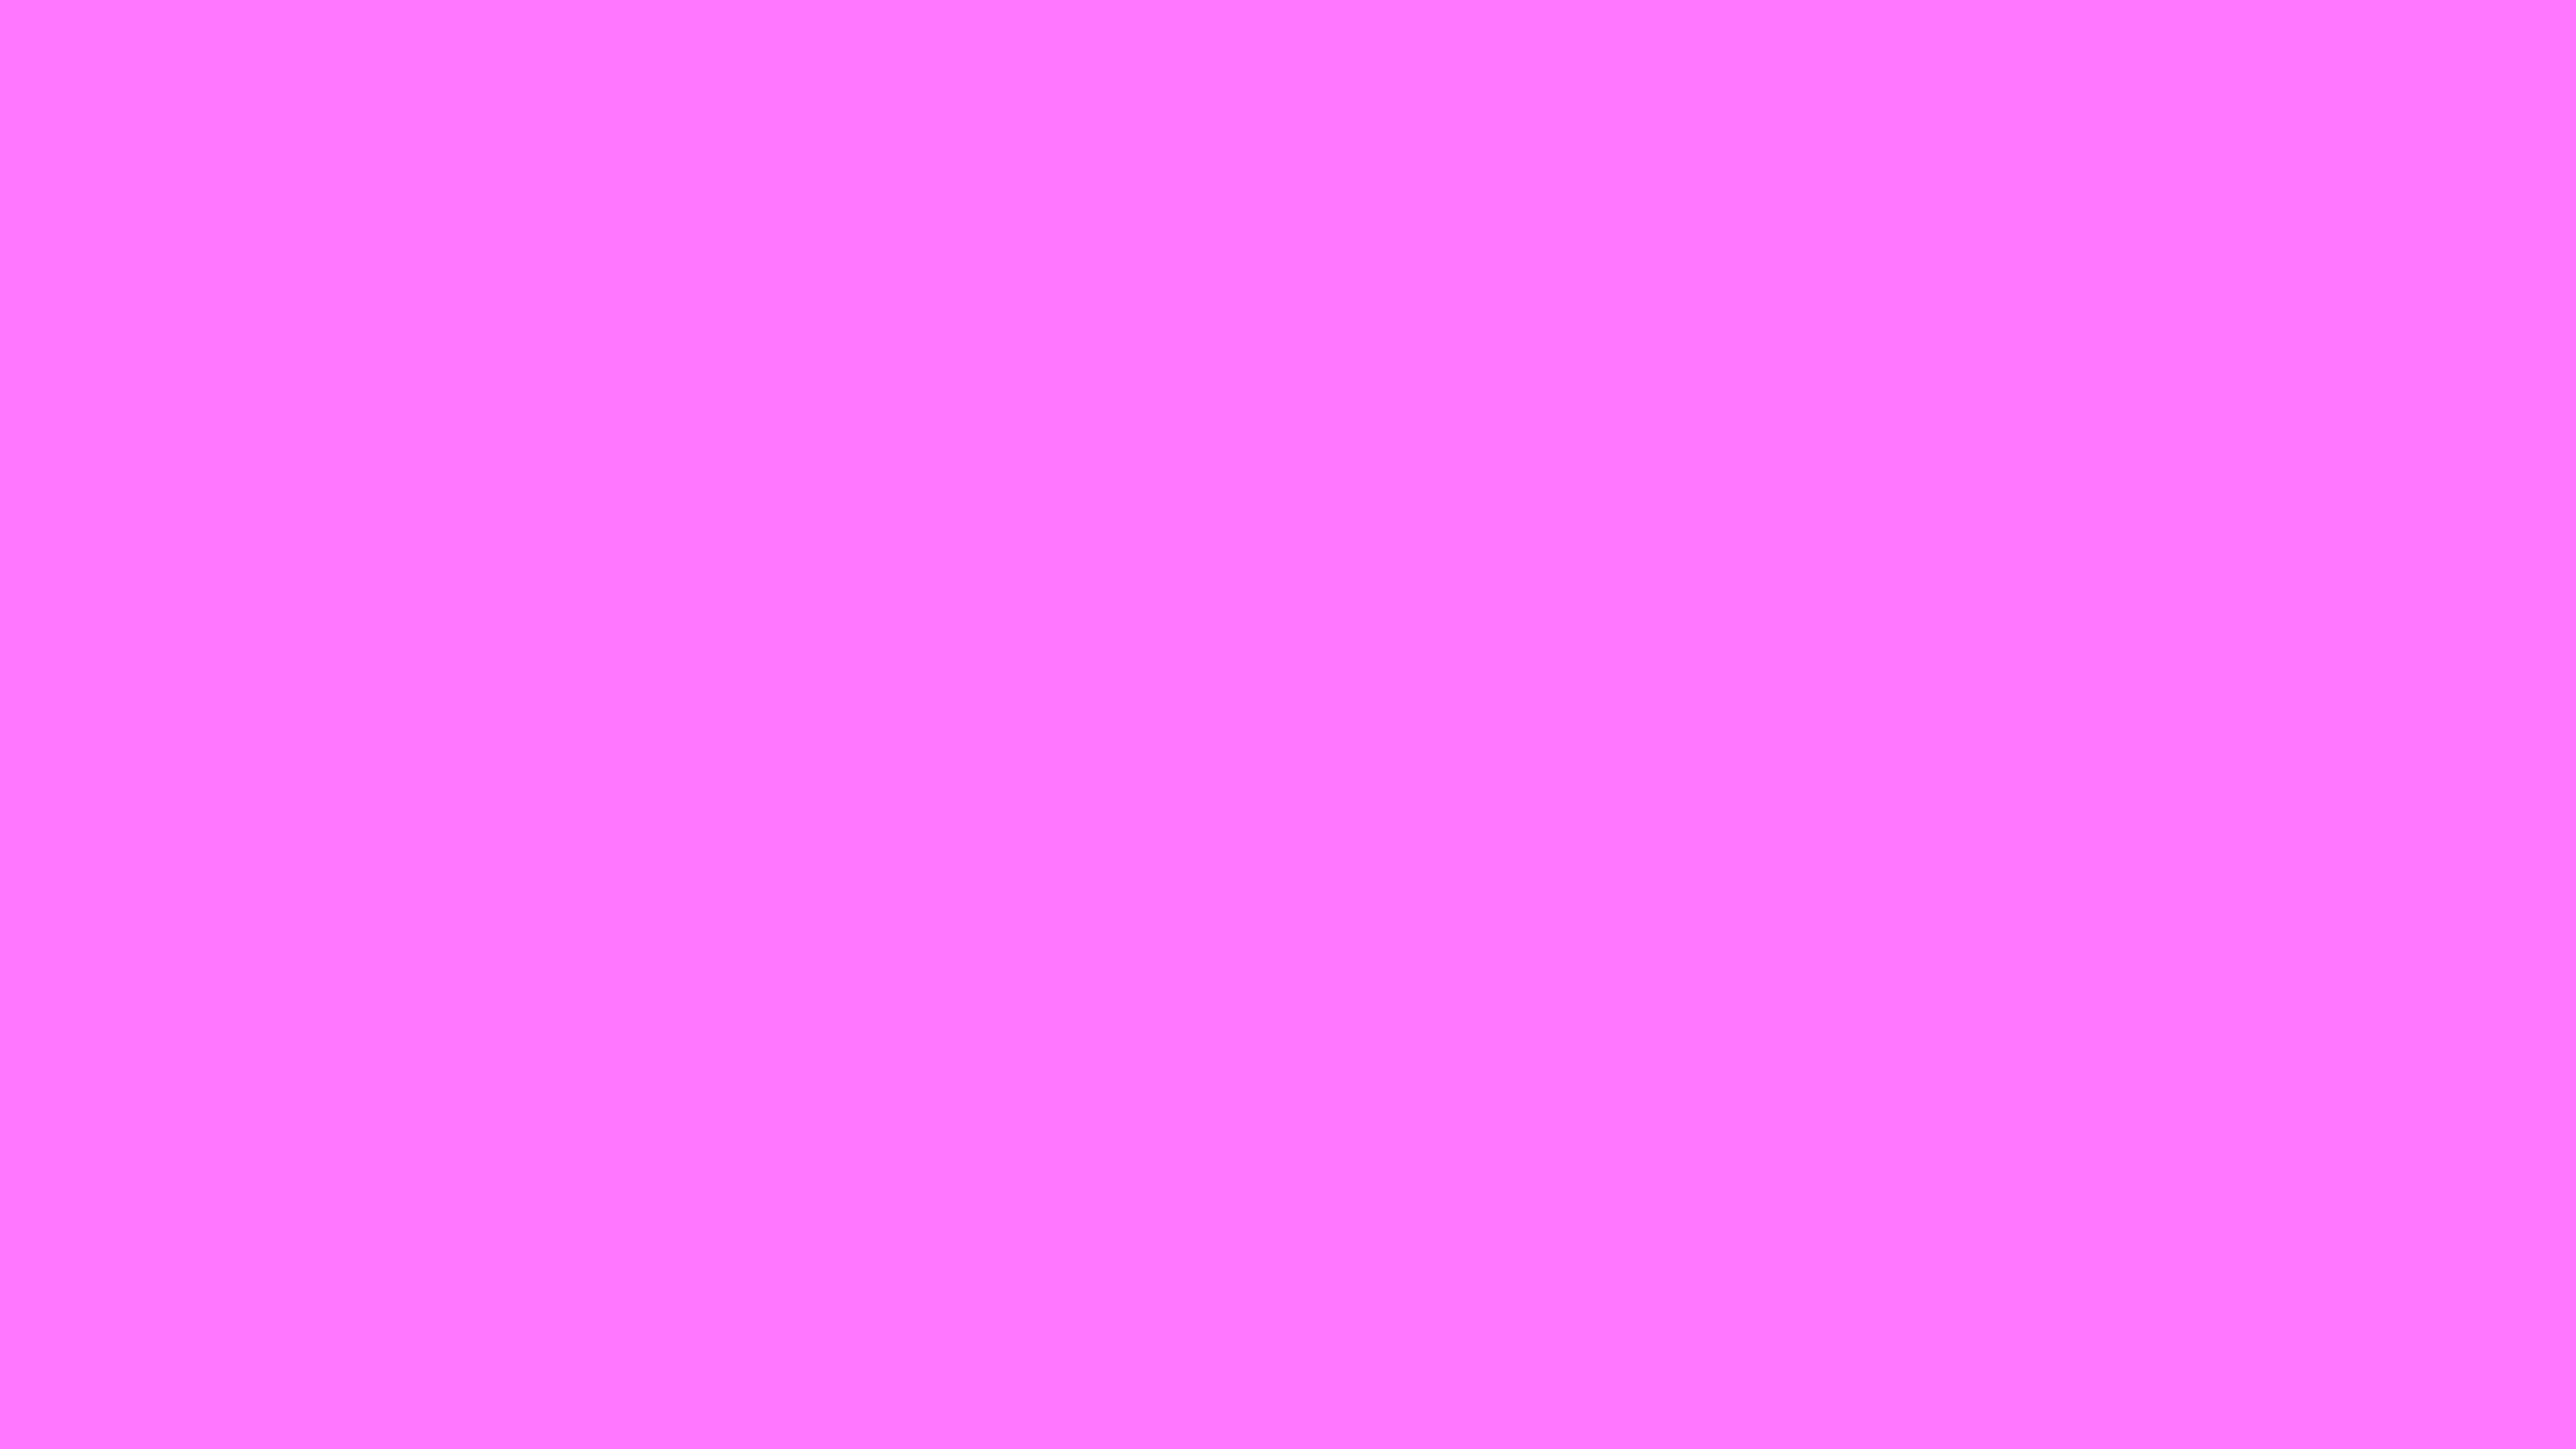 4096x2304 Fuchsia Pink Solid Color Background